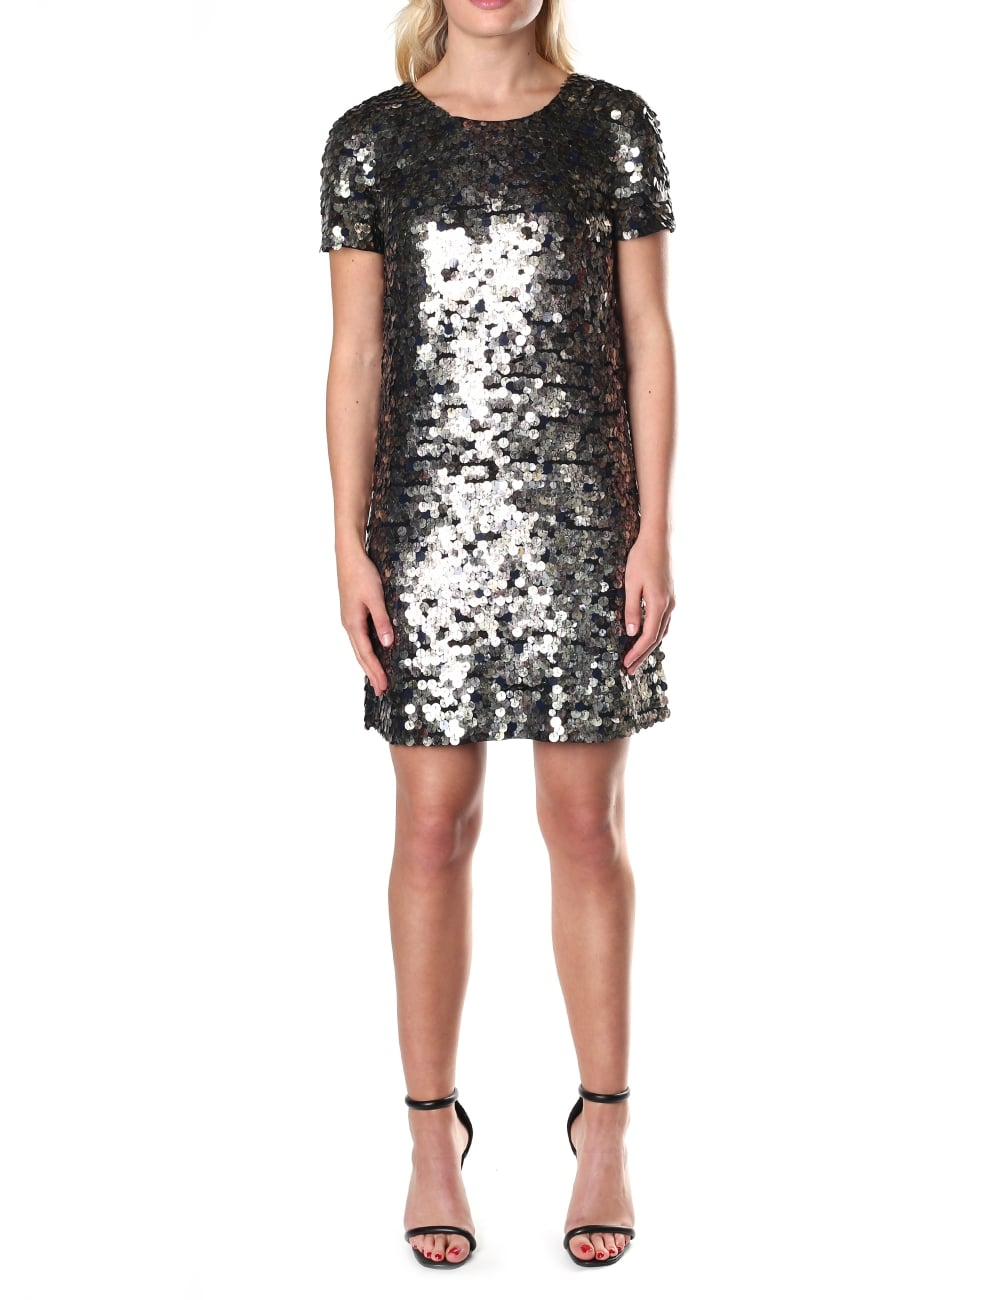 31868f5340b French Connection Women's Moon Rock Sparkle Short Sleeve Round Neck ...